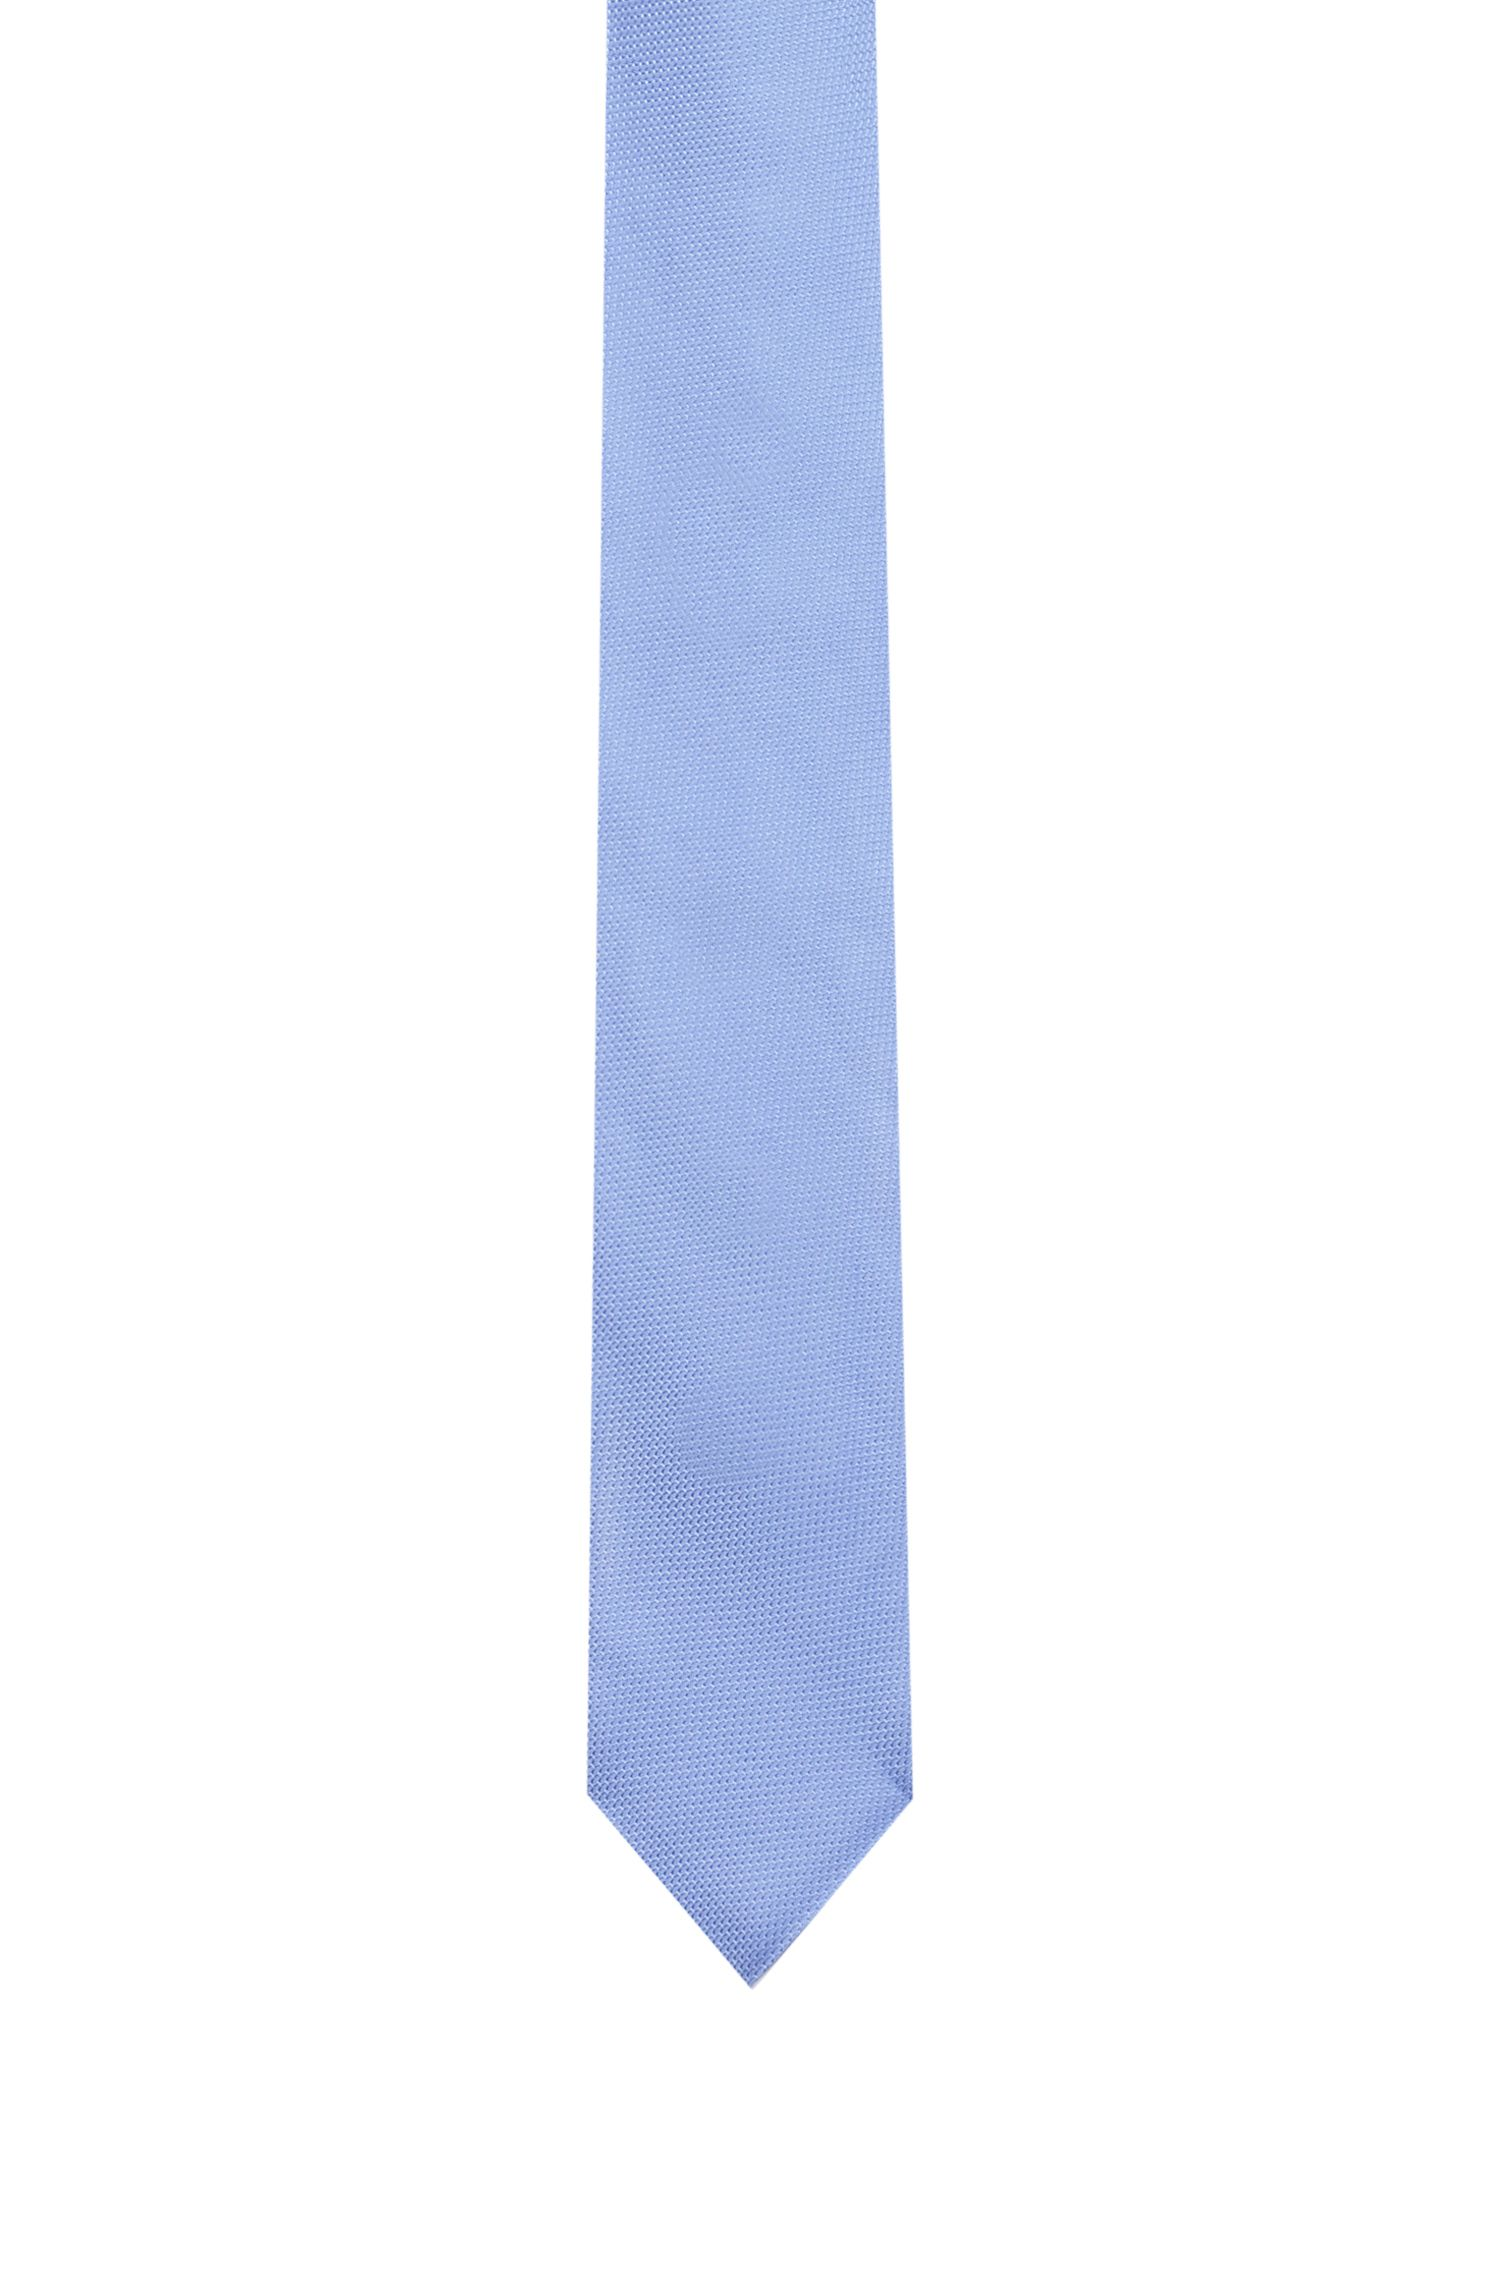 Hugo Boss - Micro-patterned tie in pure silk jacquard - 1